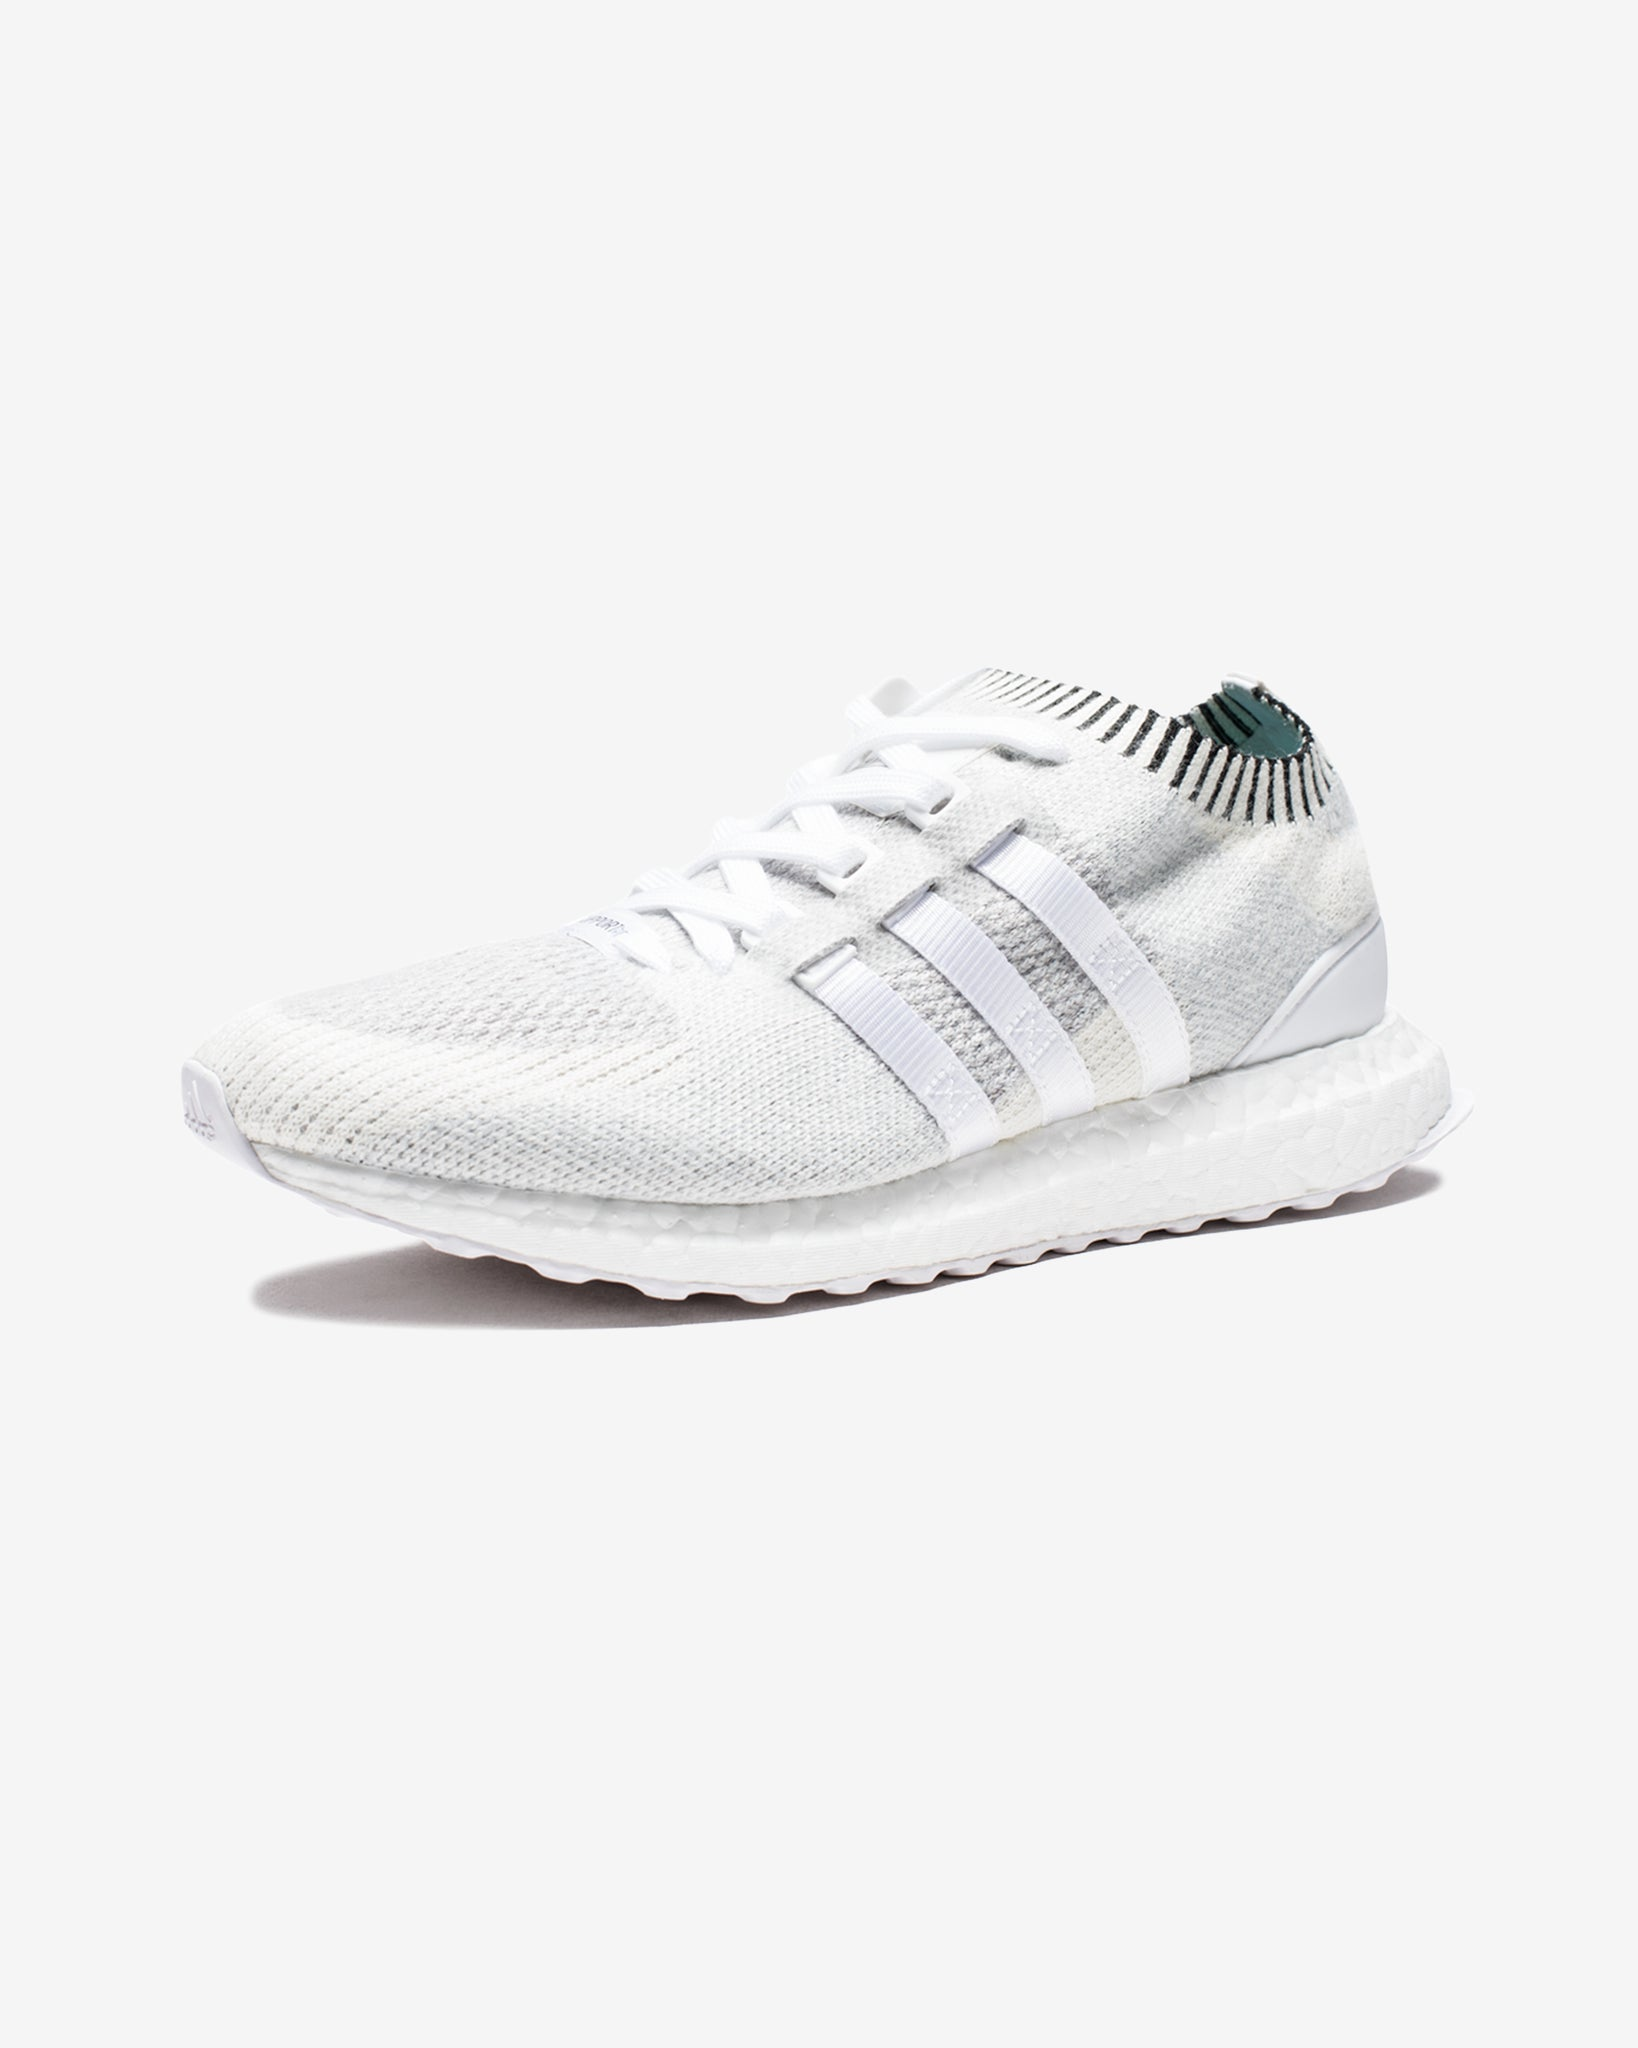 EQT SUPPORT ULTRA PK - VINTAGEWHITE/WHITE/BLACK